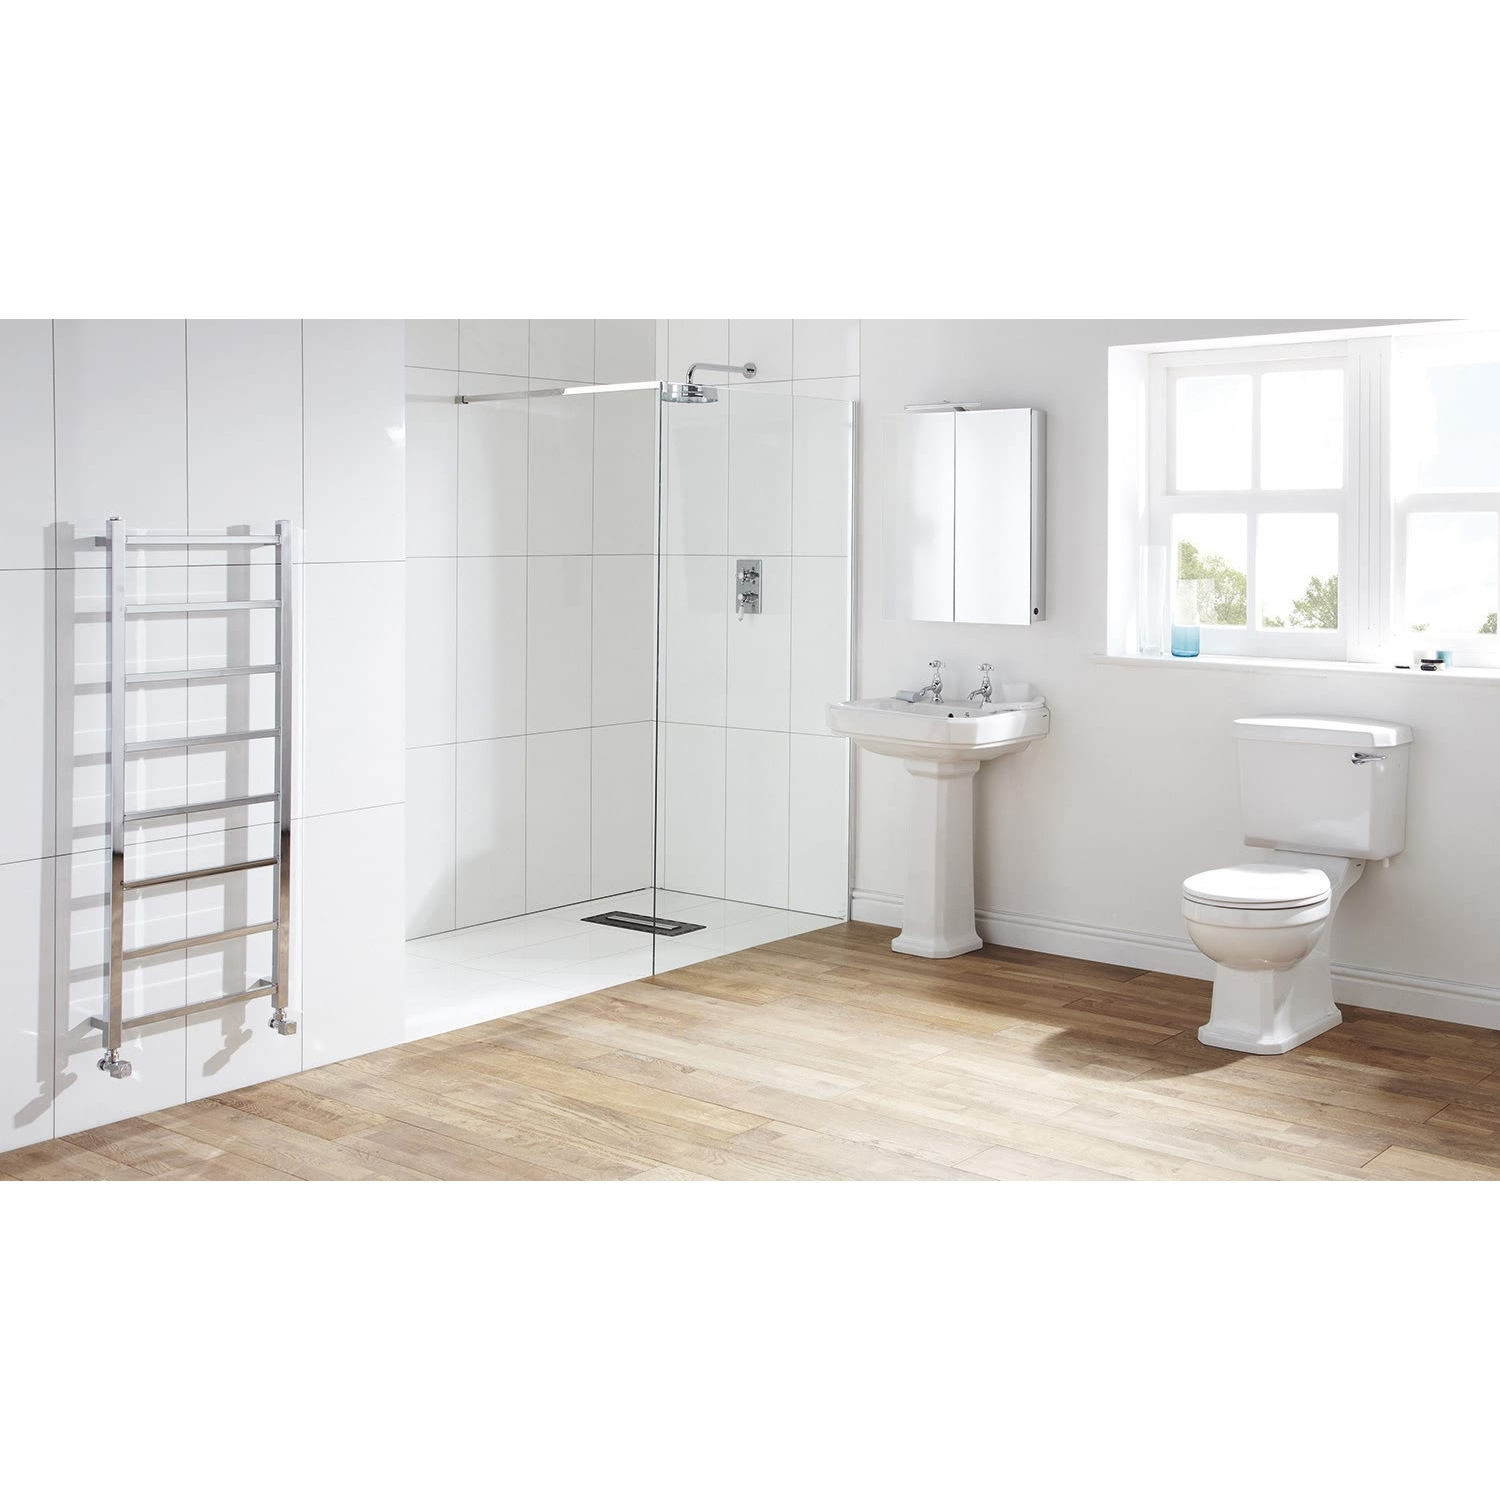 Verona Hamilton Close Coupled Toilet with Cistern - Excluding Seat